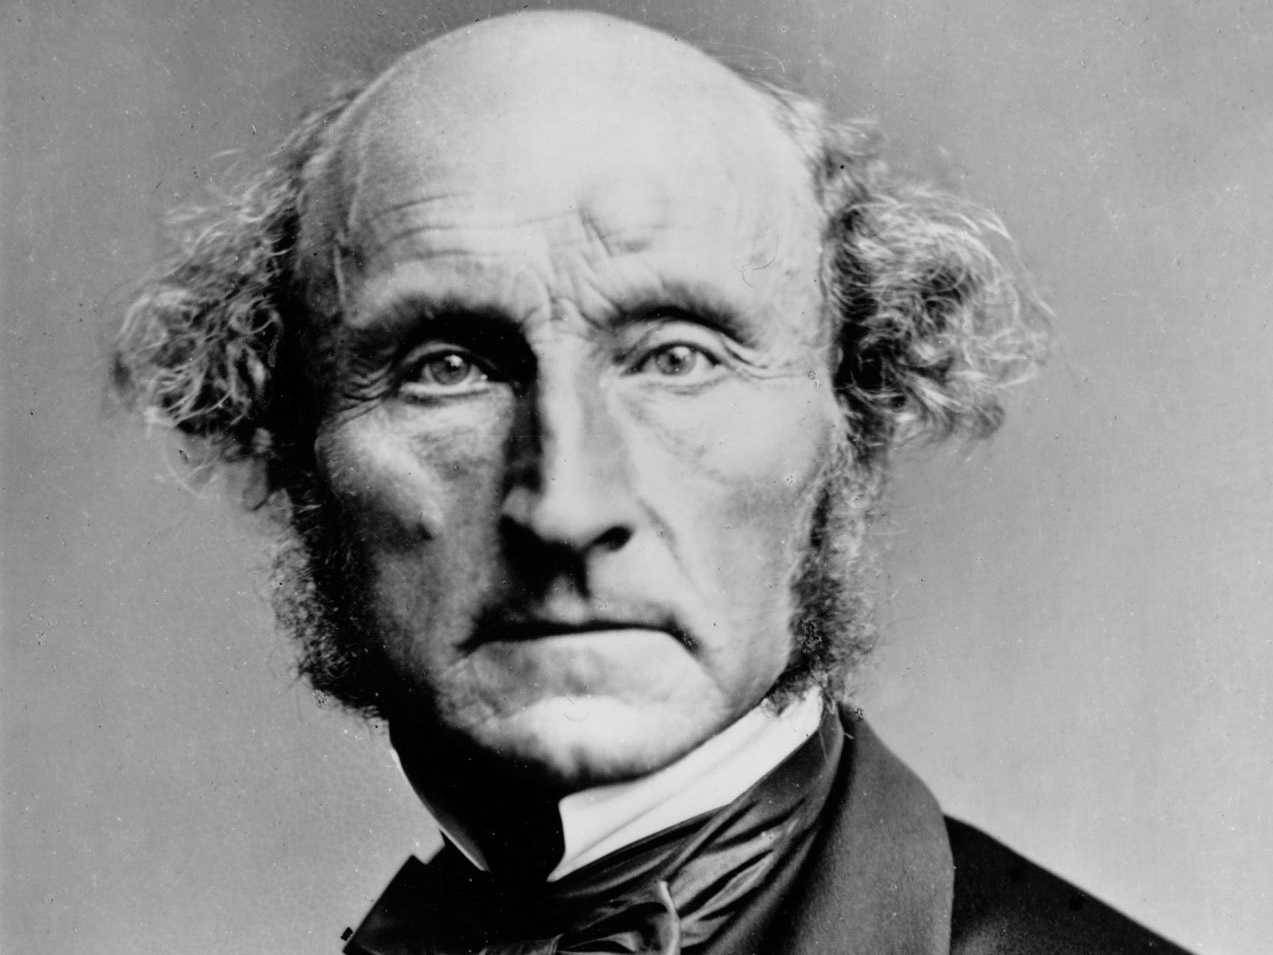 the utilitarianism by john stuart mill John stuart mill's book utilitarianism is one of the most influential and widely- read philosophical defenses of utilitarianism in ethics the essay.